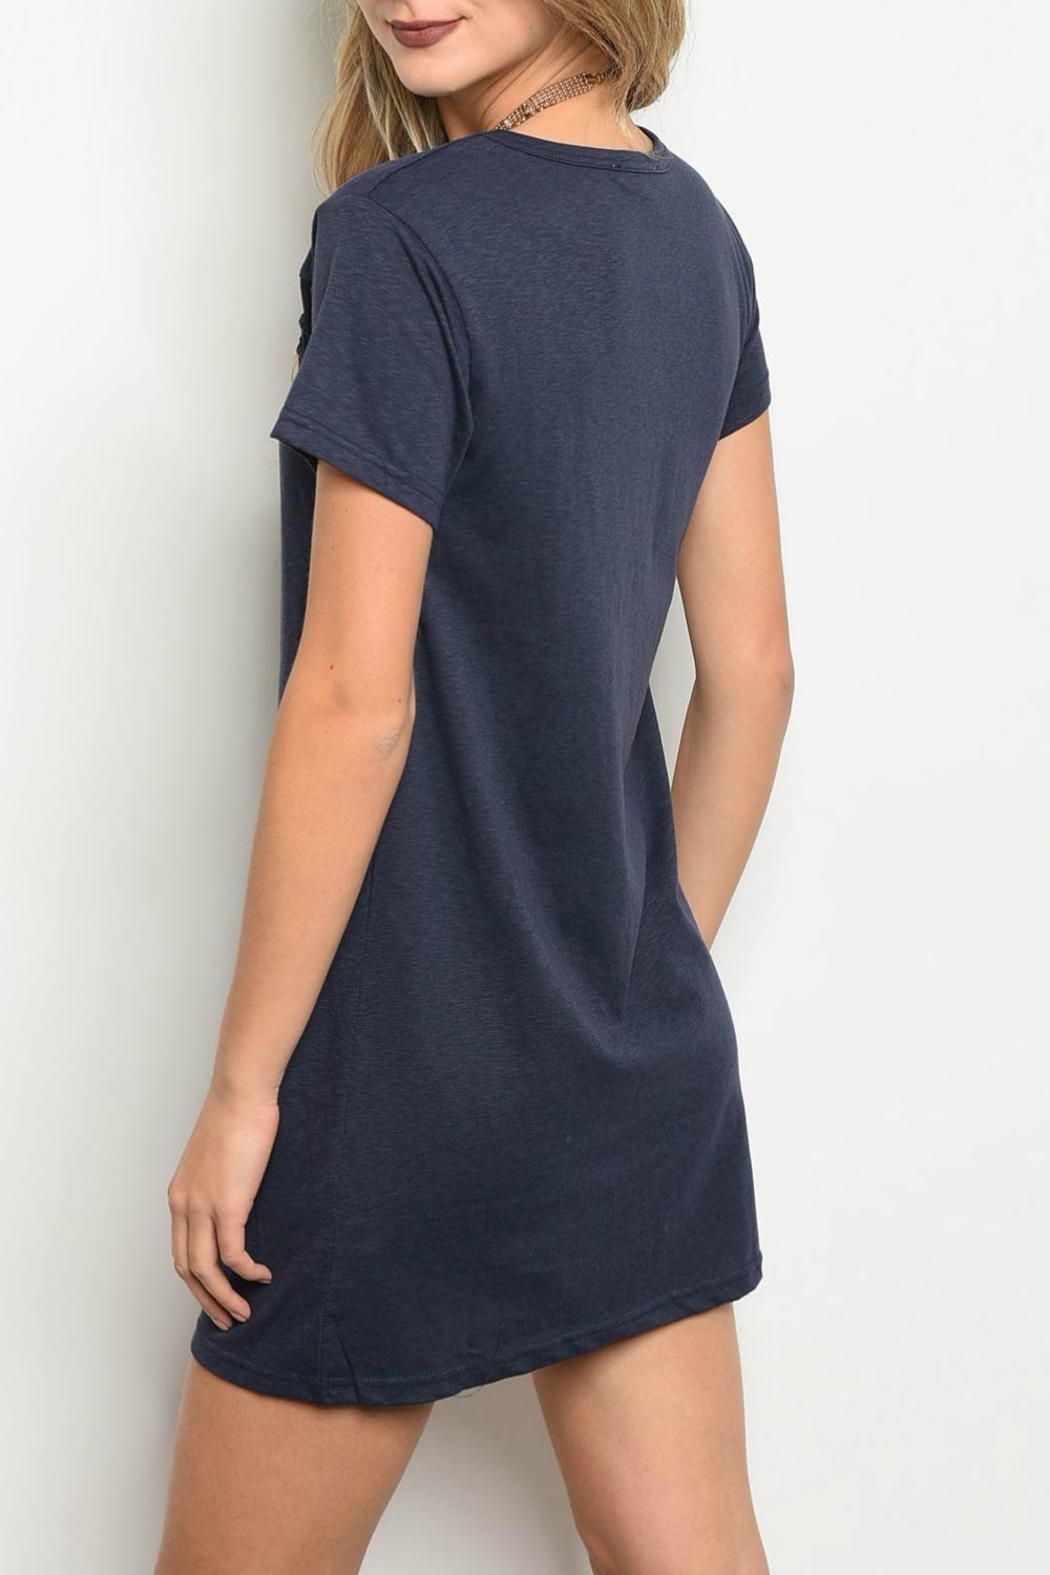 LoveRiche Navy Dress - Front Full Image